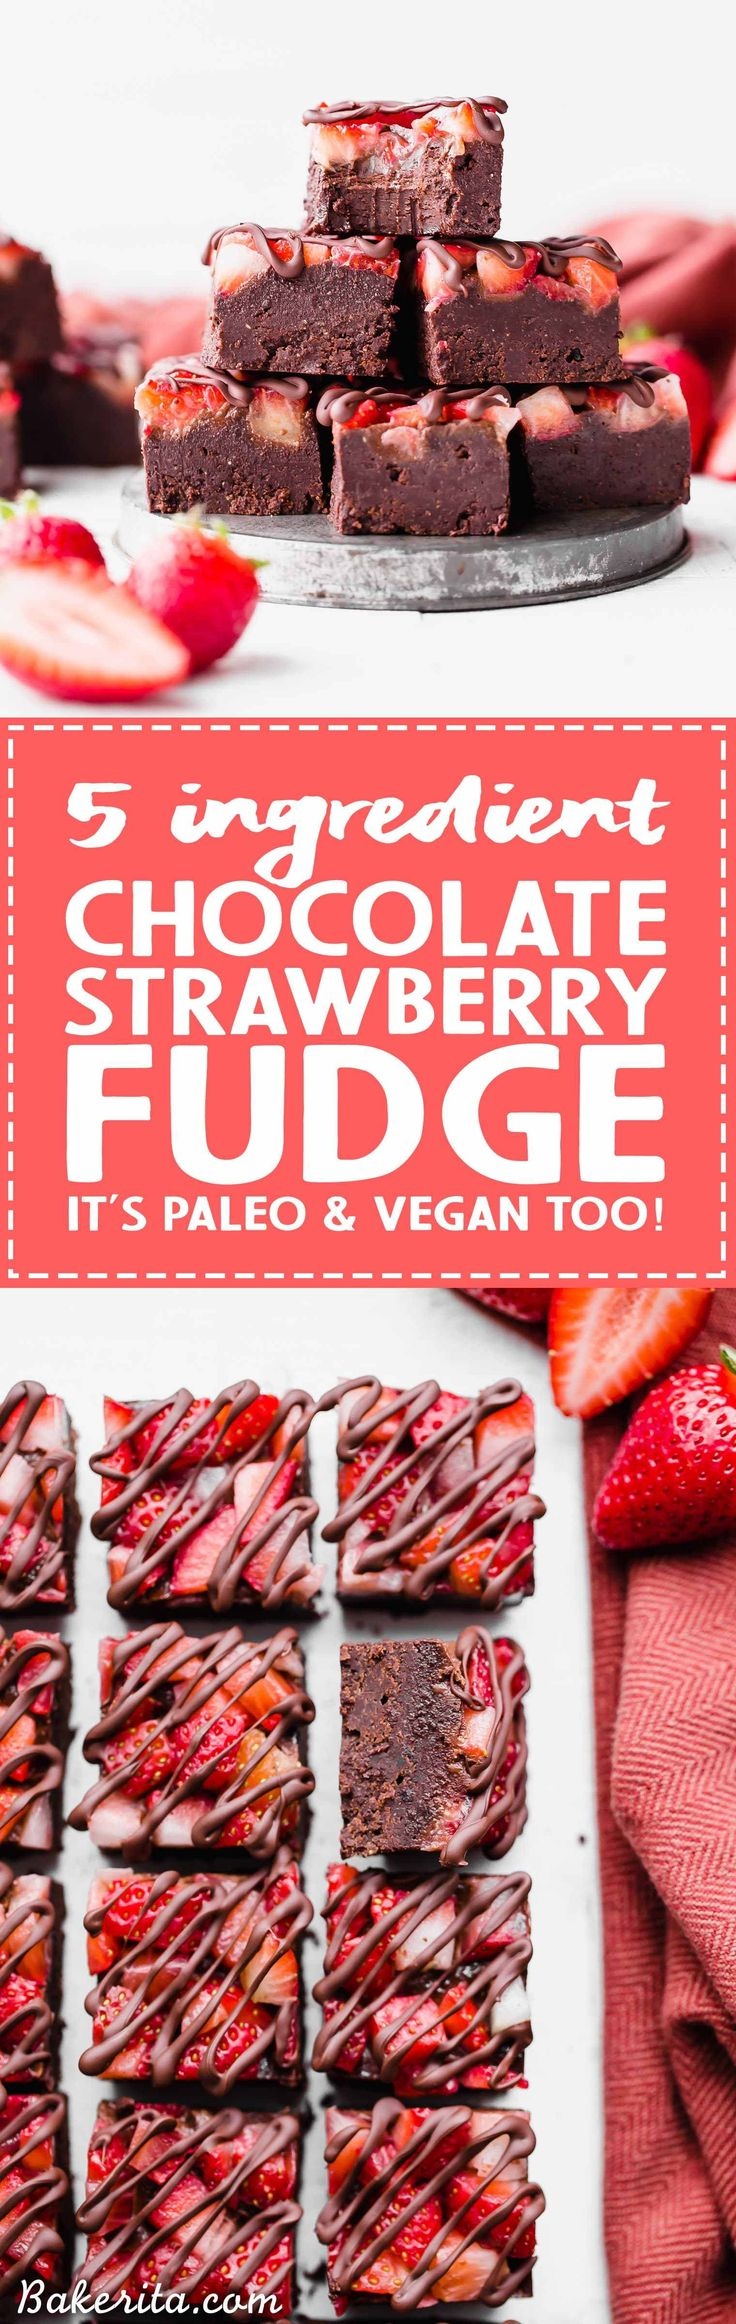 This Chocolate Strawberry Fudge is a simple and delicious five-ingredient recipe you'll want to make over and over! It tastes just like chocolate covered strawberries, but way easier to make. There's no cooking required for this gluten-free, paleo and vegan fudge recipe.